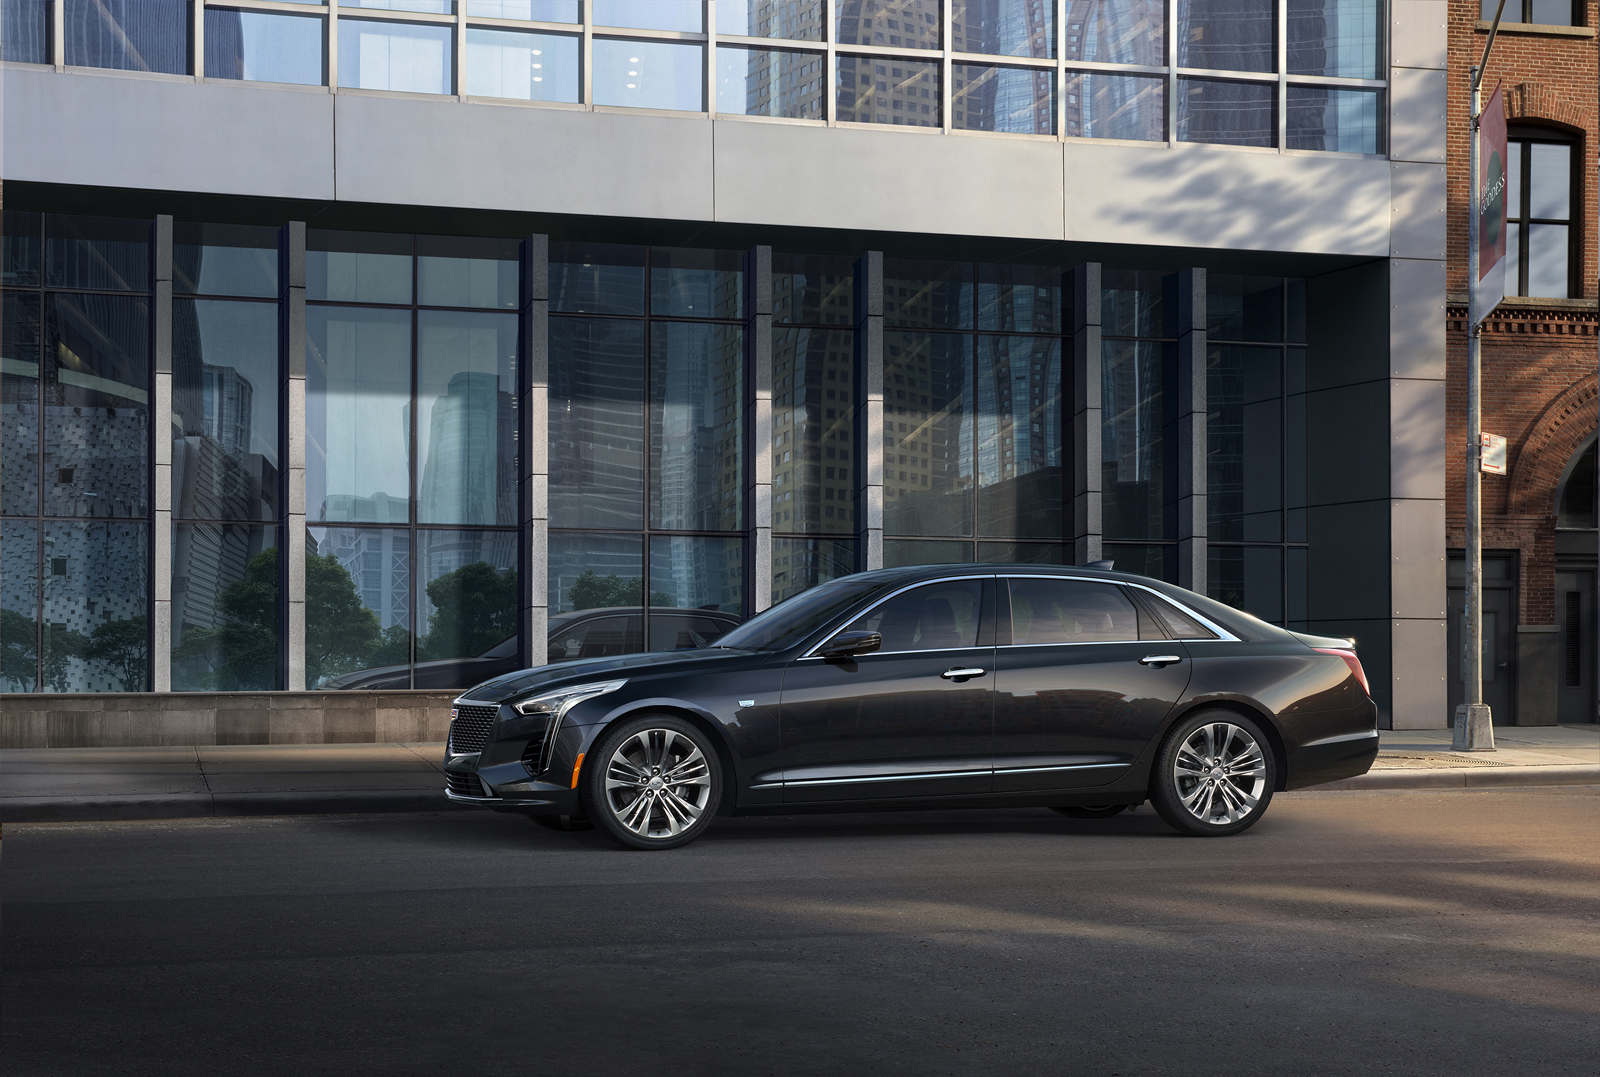 2019 cadillac ct6 v sport debuts with 550 hp twin turbo v8 news